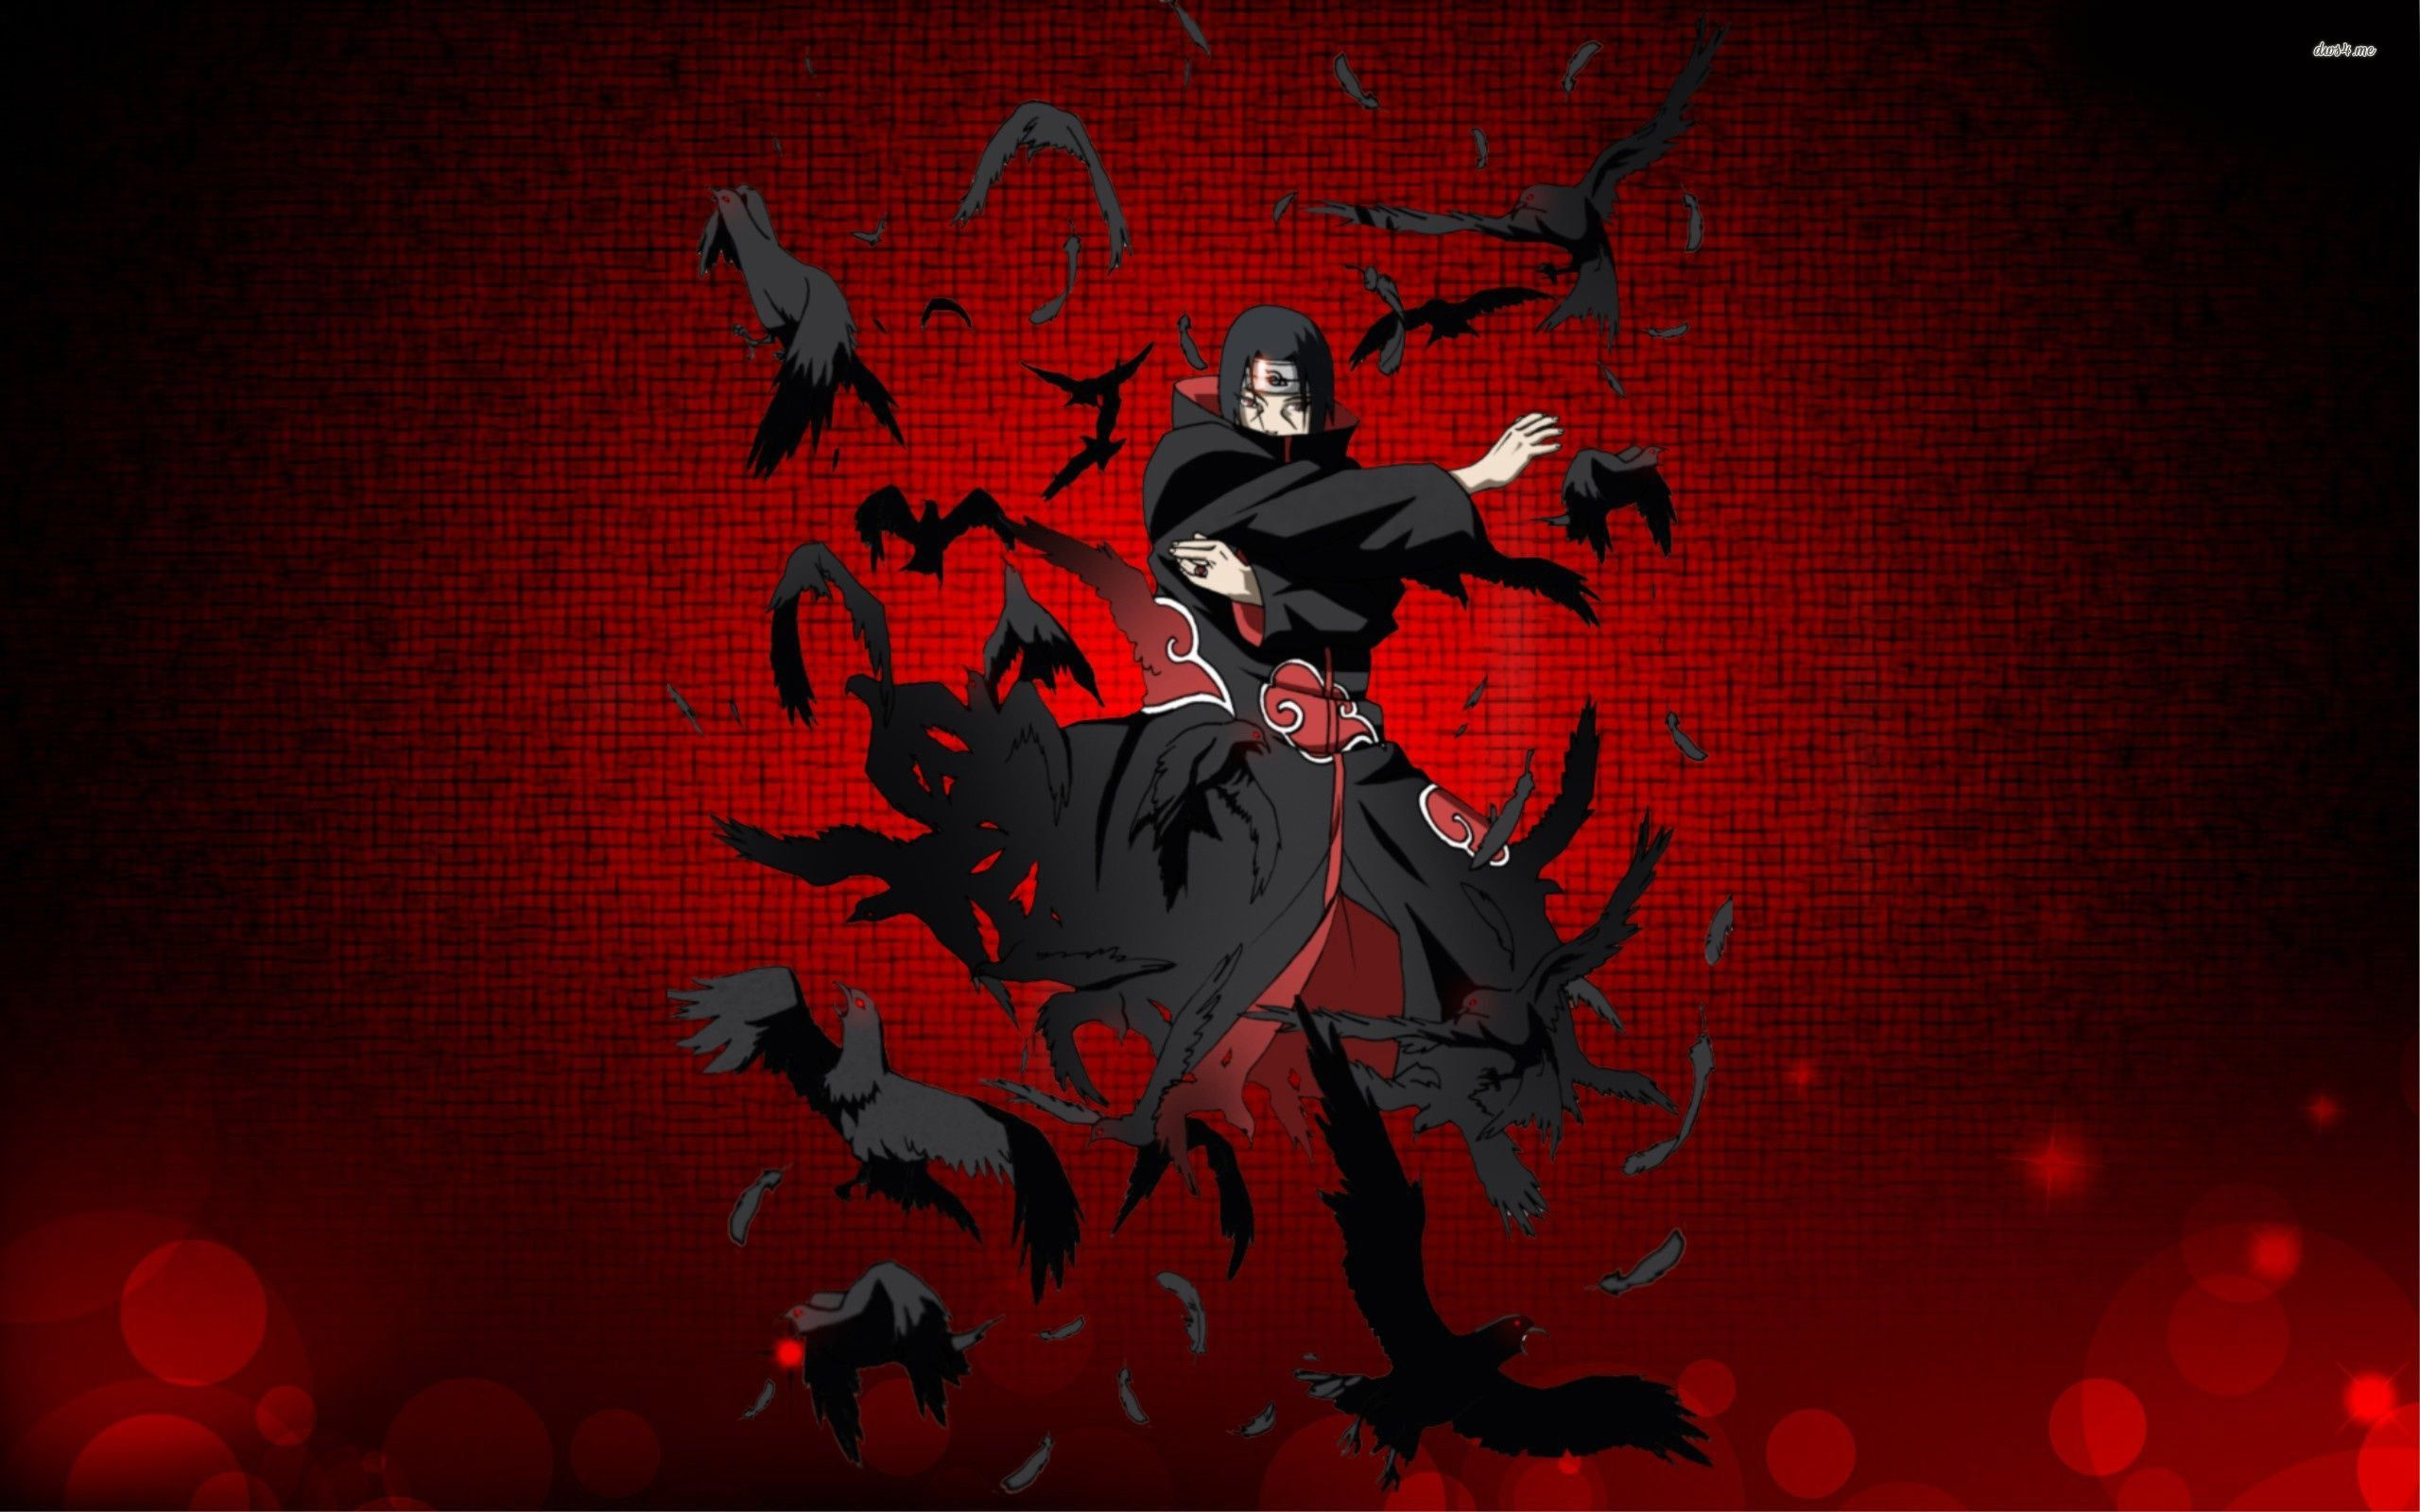 2560x1600 Itachi Uchiha Wallpaper 4k The Ramenswag Wallpapers